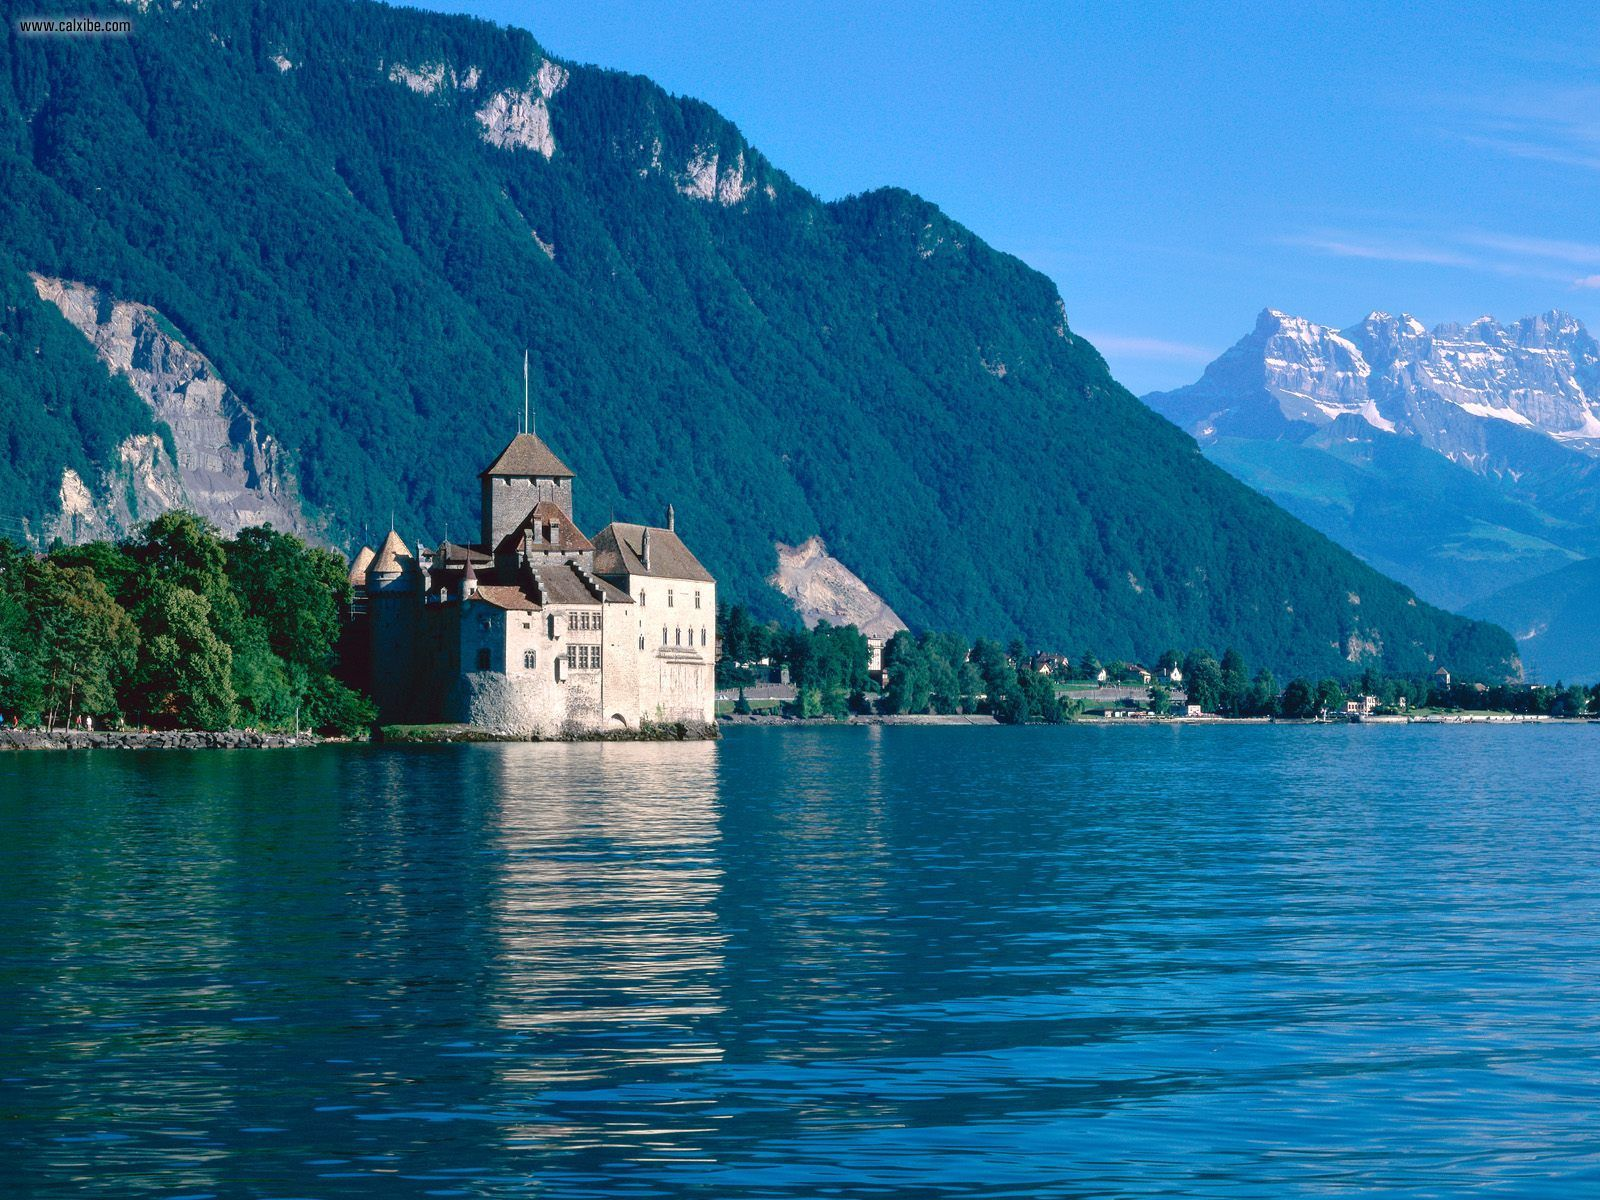 Chateau_de_Chillon_Lake_Geneva_Switzerland